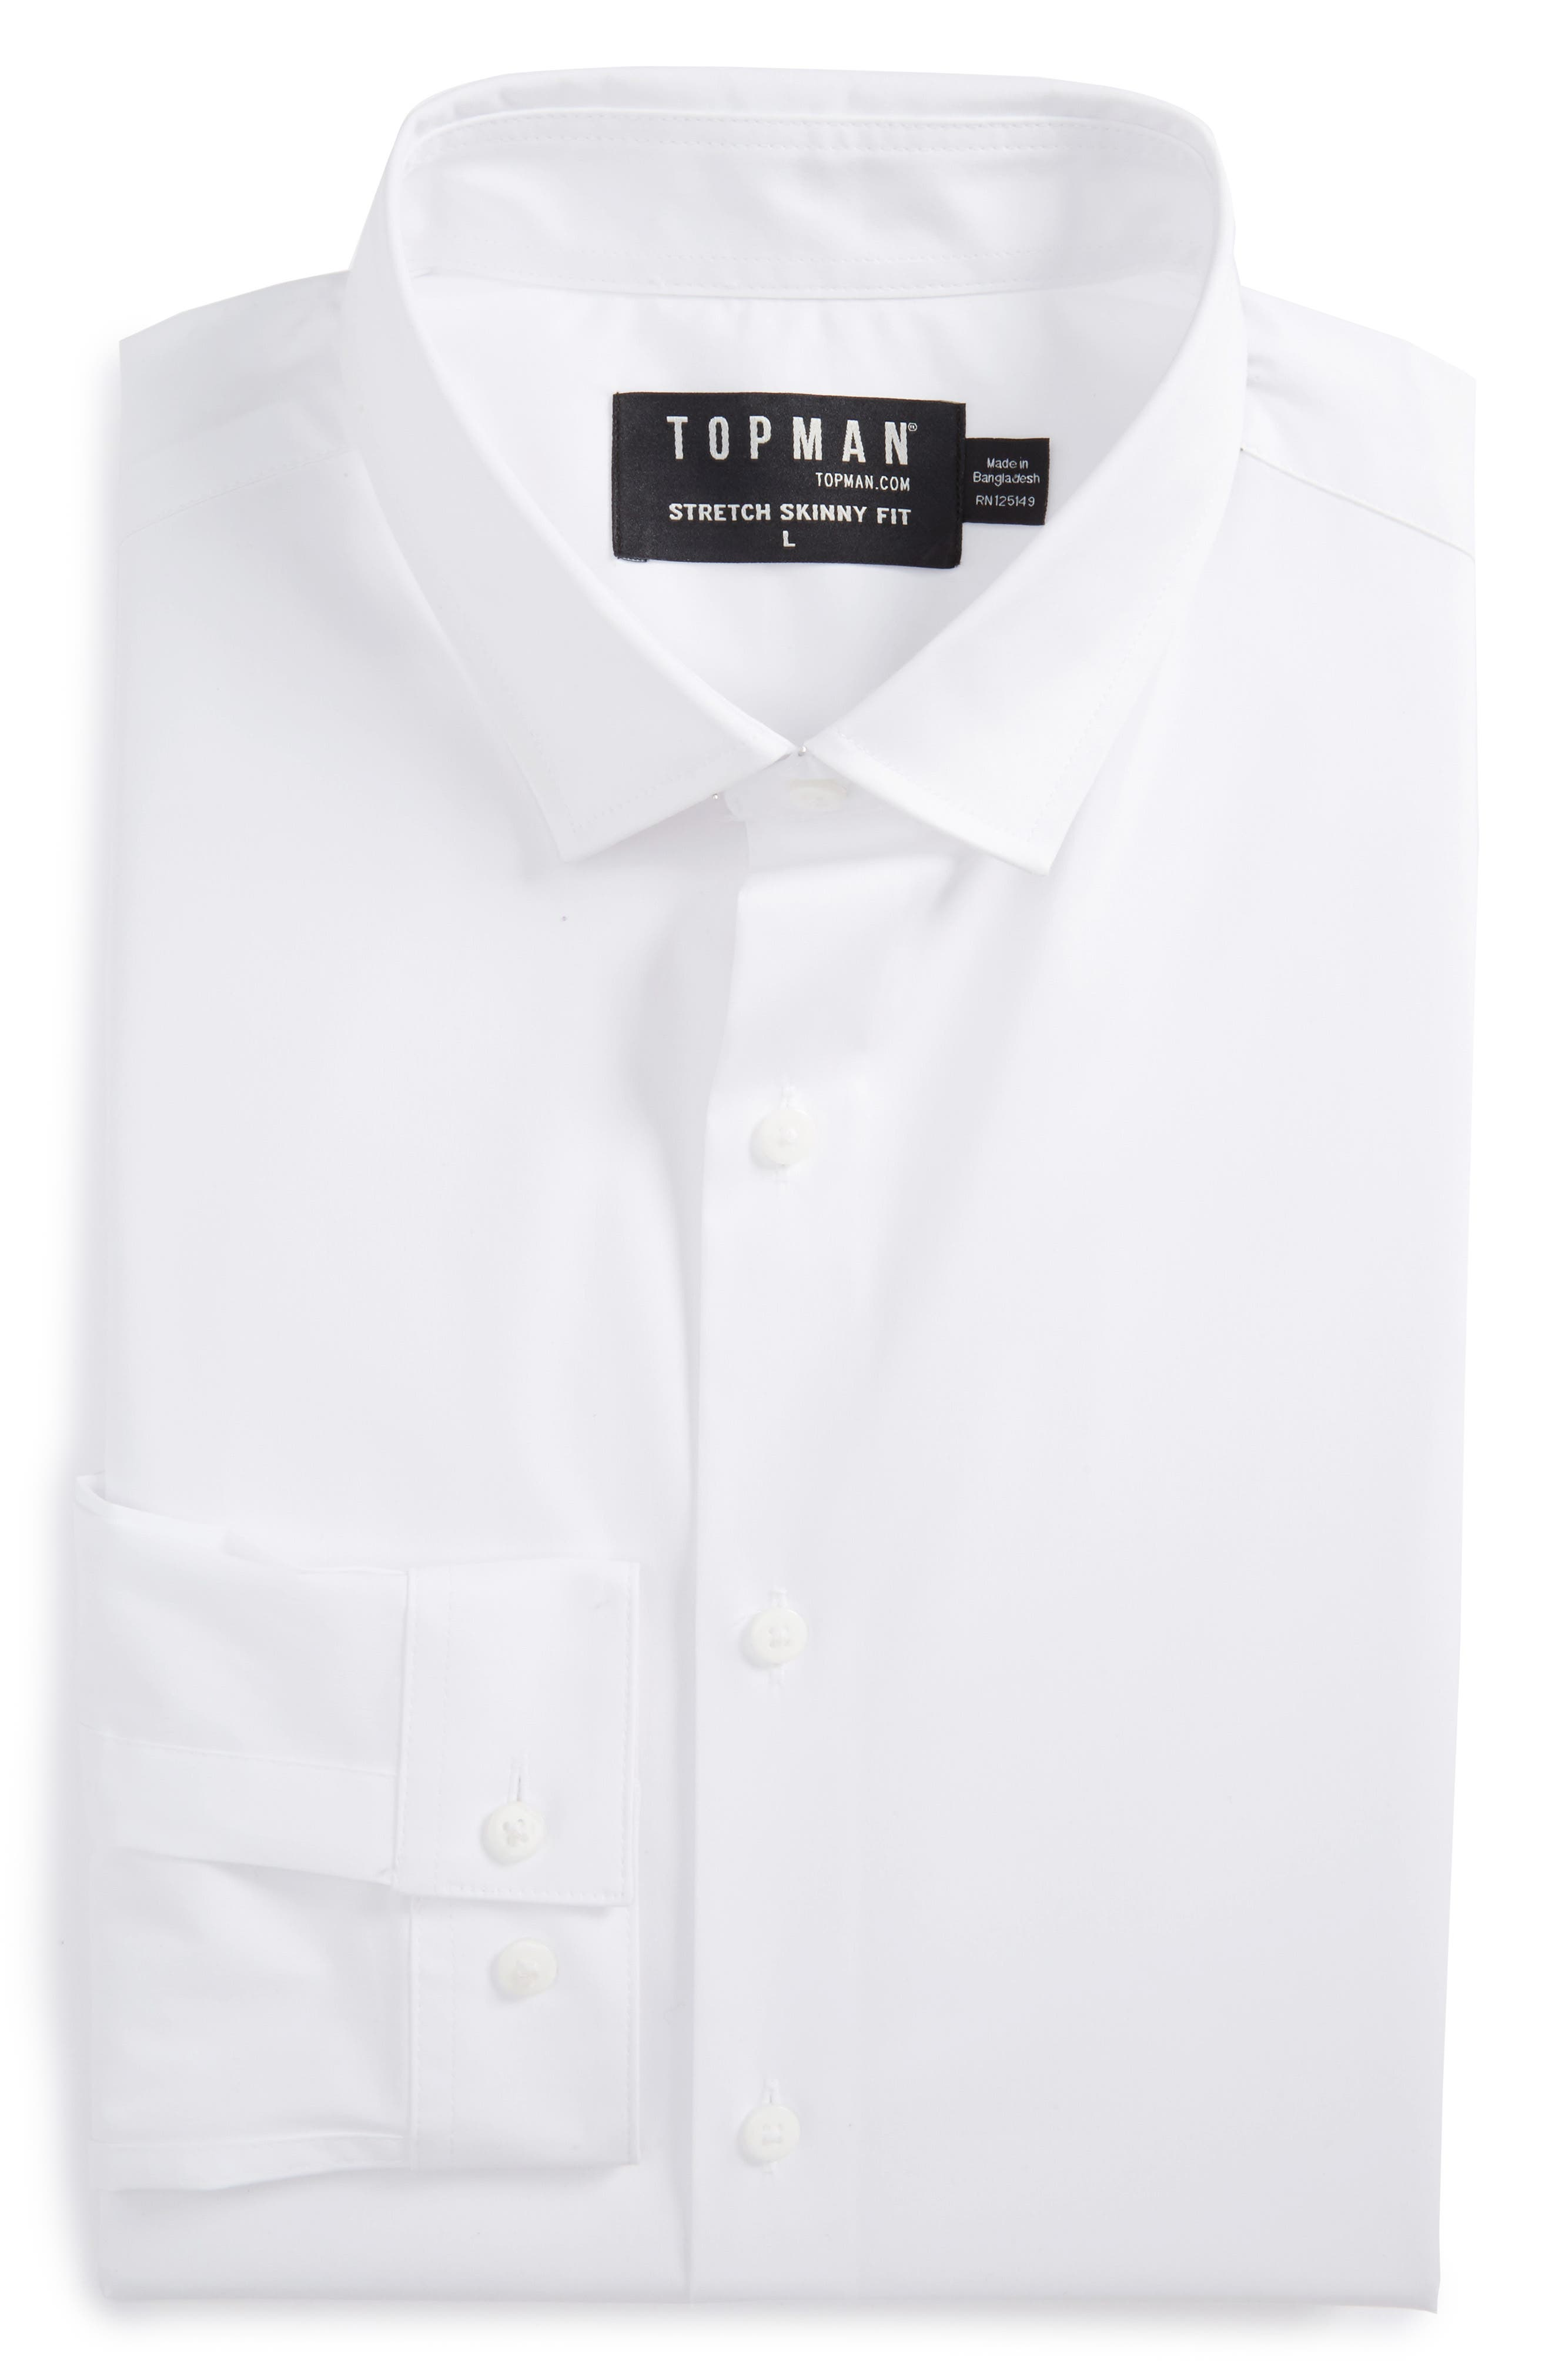 Topman Skinny Fit Stretch Dress Shirt